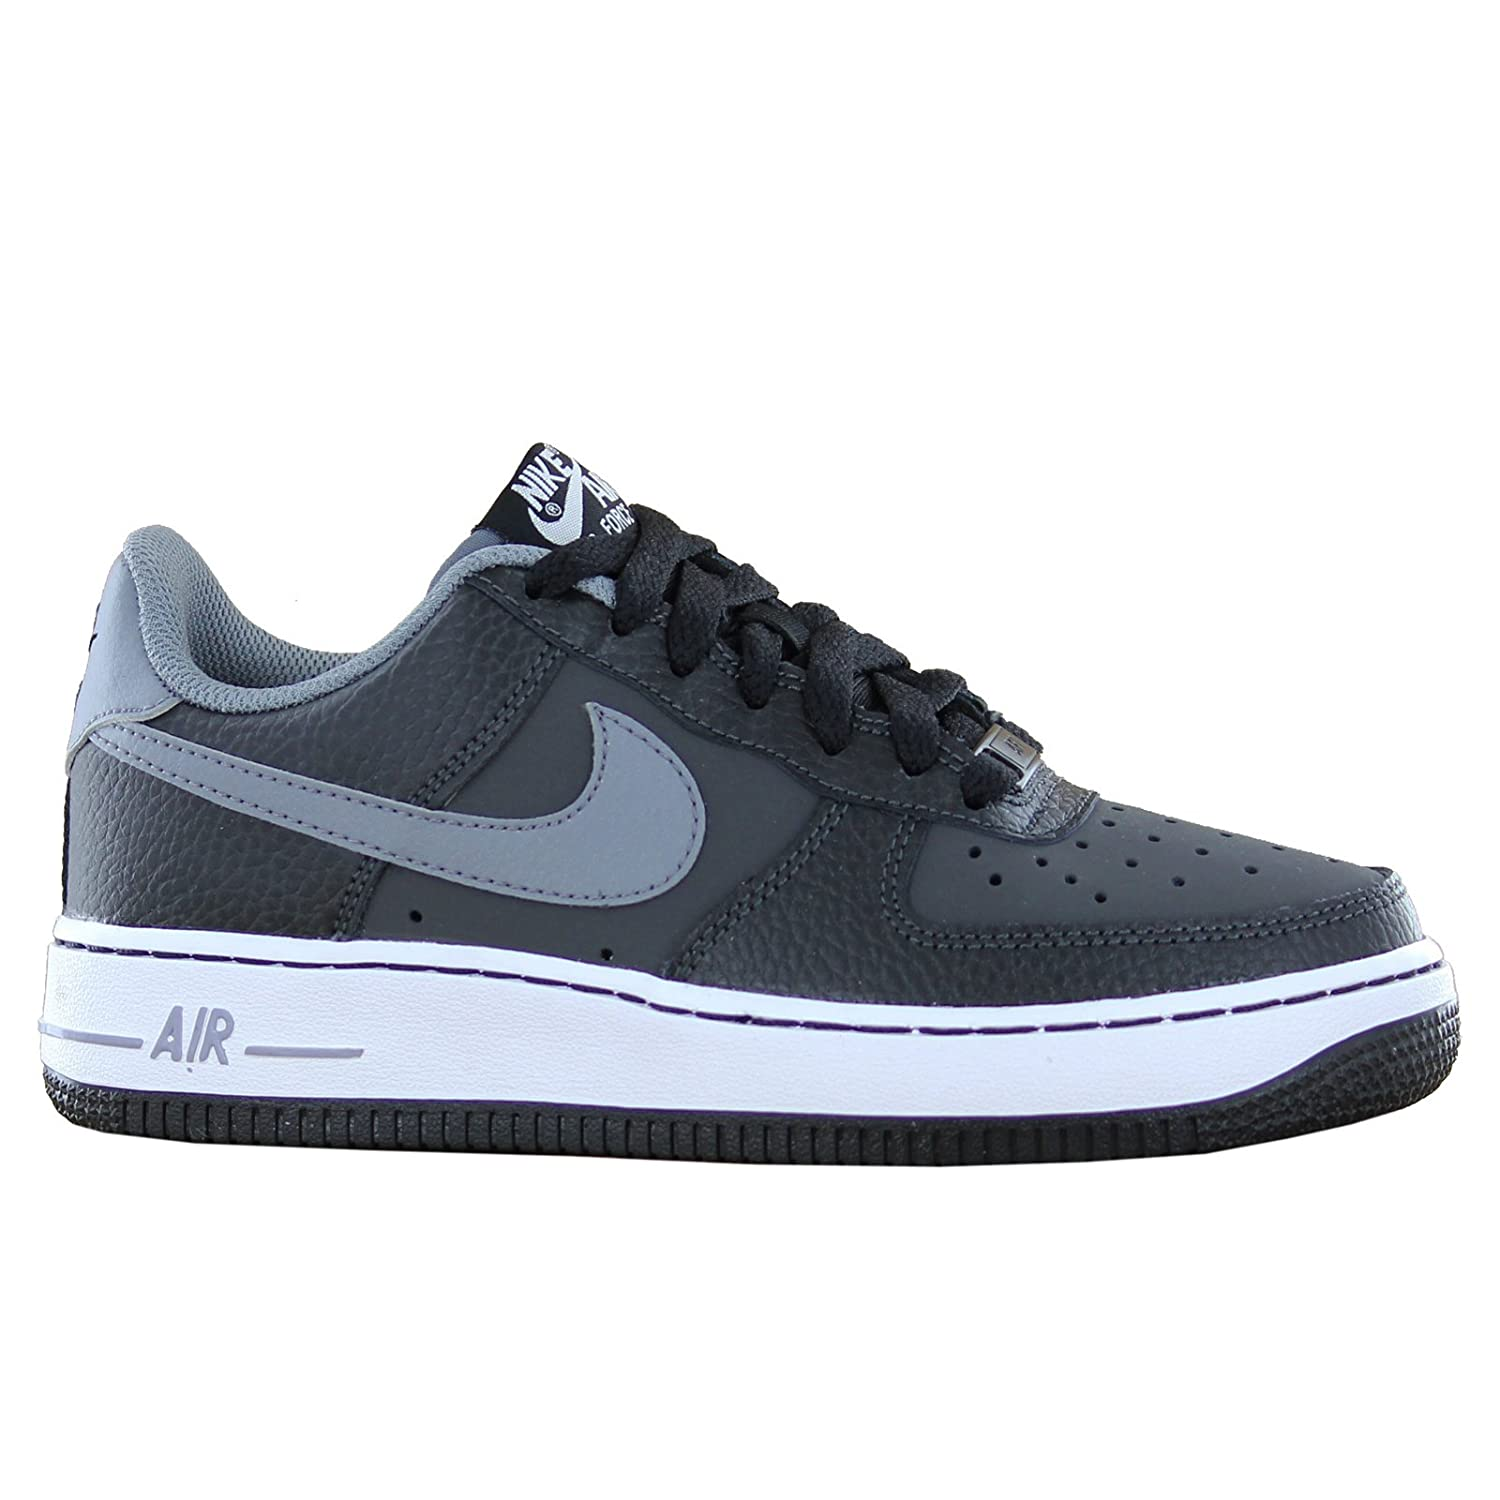 détaillant en ligne 5a7e0 c410b Nike Air Classic BW (GS) 131, Size 35, 5: Amazon.co.uk ...